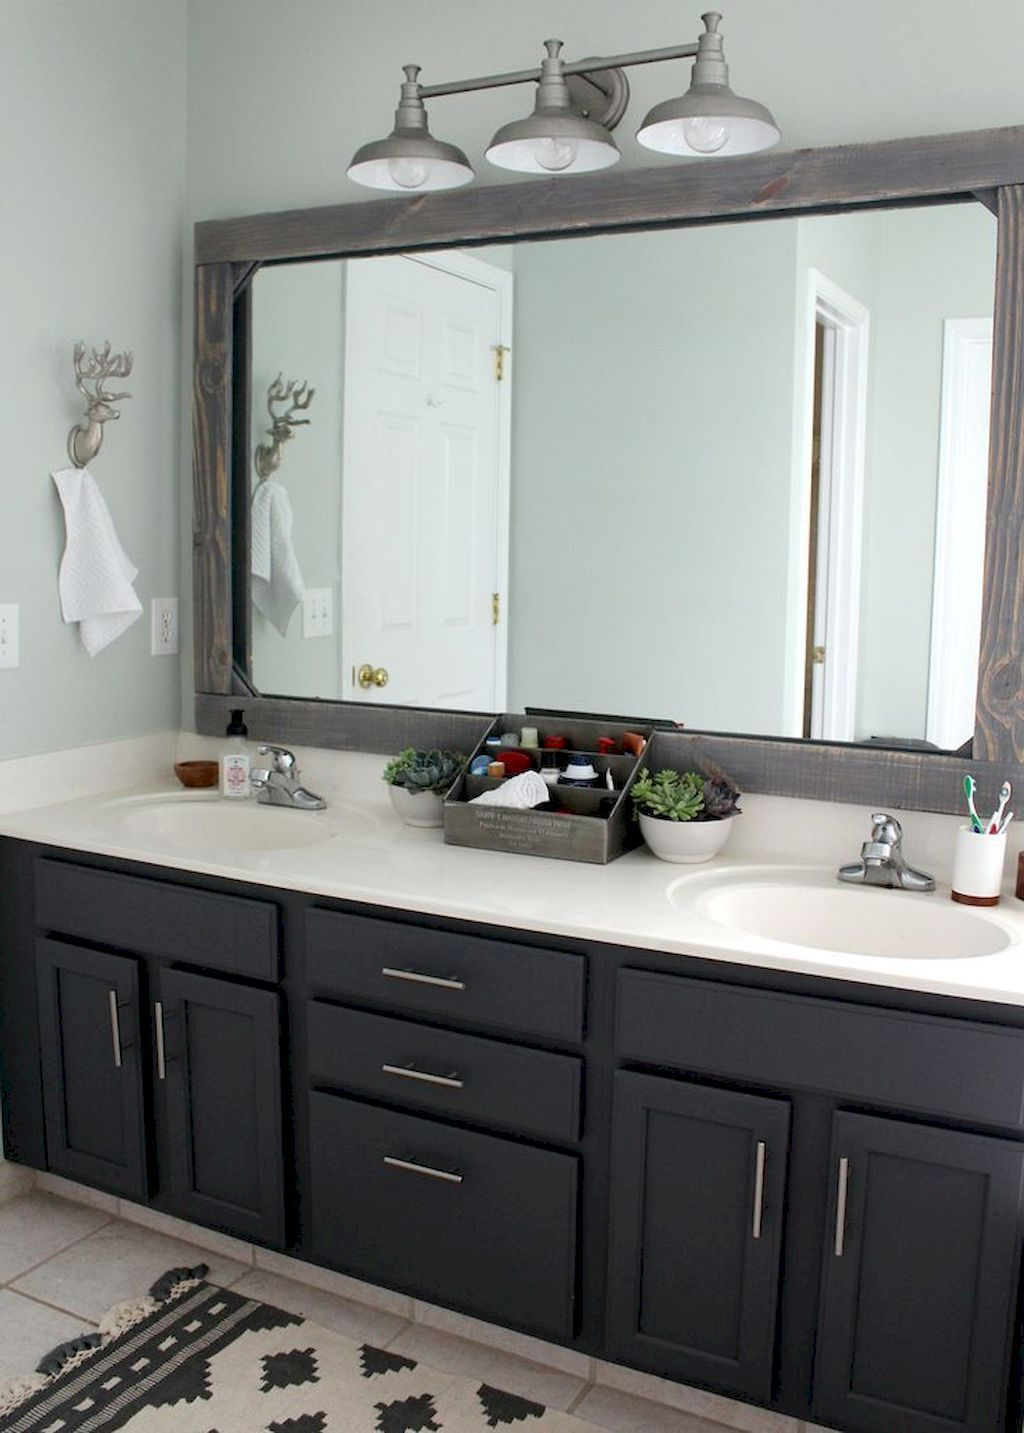 Free Standing Bathroom Cabinets Ideas Master Bathroom Update Bathroom Remodel Designs Master Bathroom Renovation